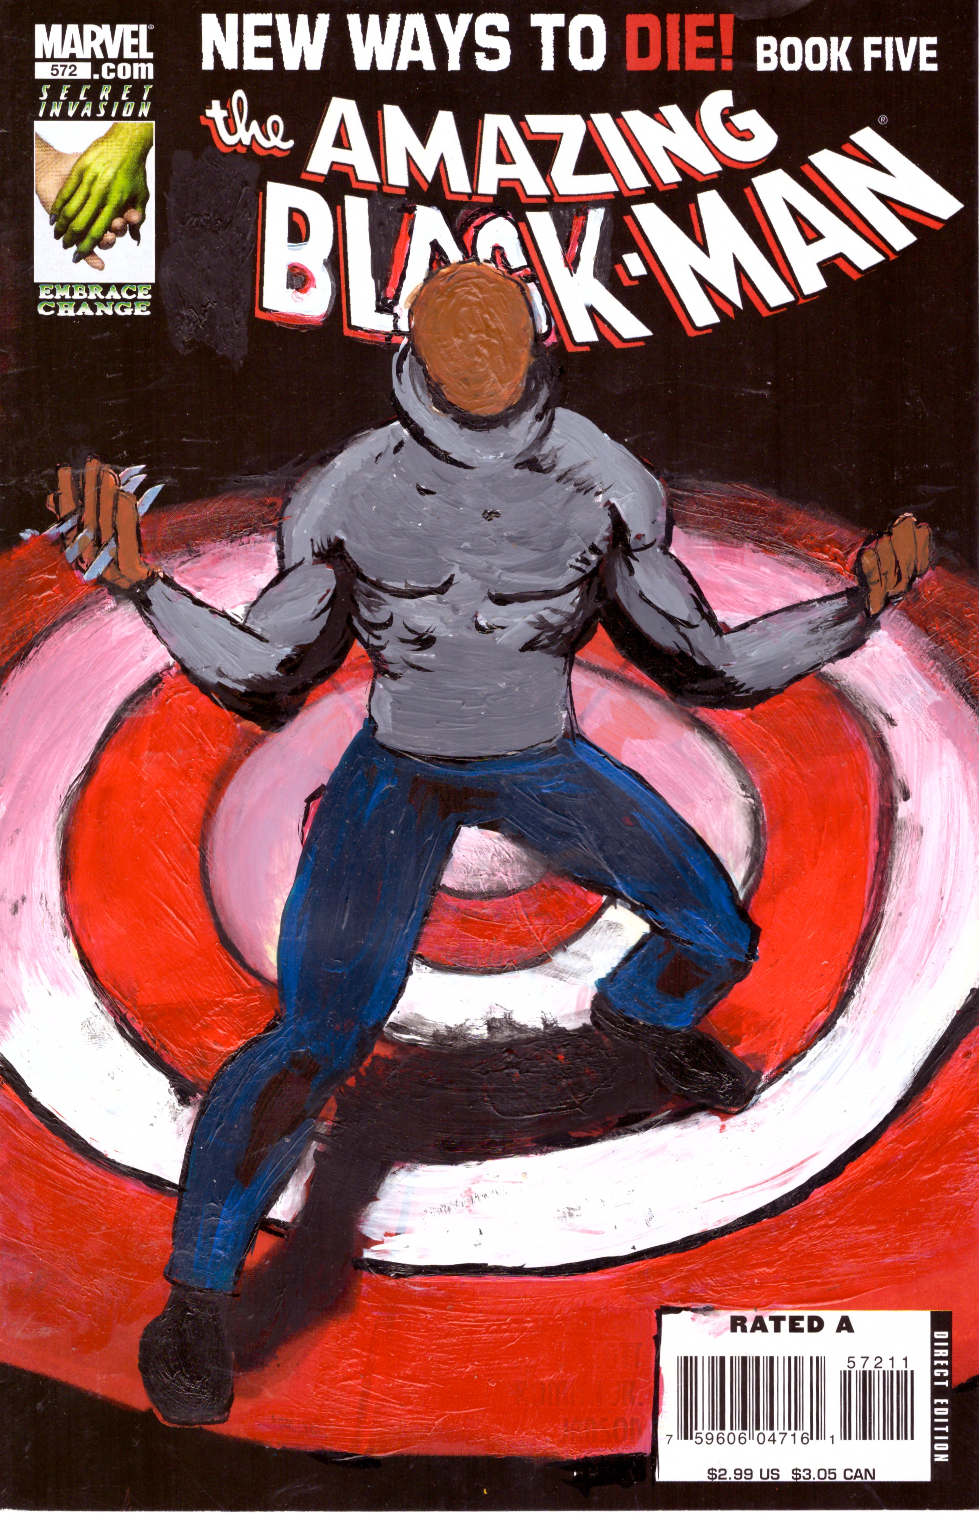 Kumasi J. Barnett The Amazing Black-Man #572  New Ways to Die! Book Five, 2018 Acrylic, marker, pen and oil marker on comic book 9 3/4h x 6 1/4w in